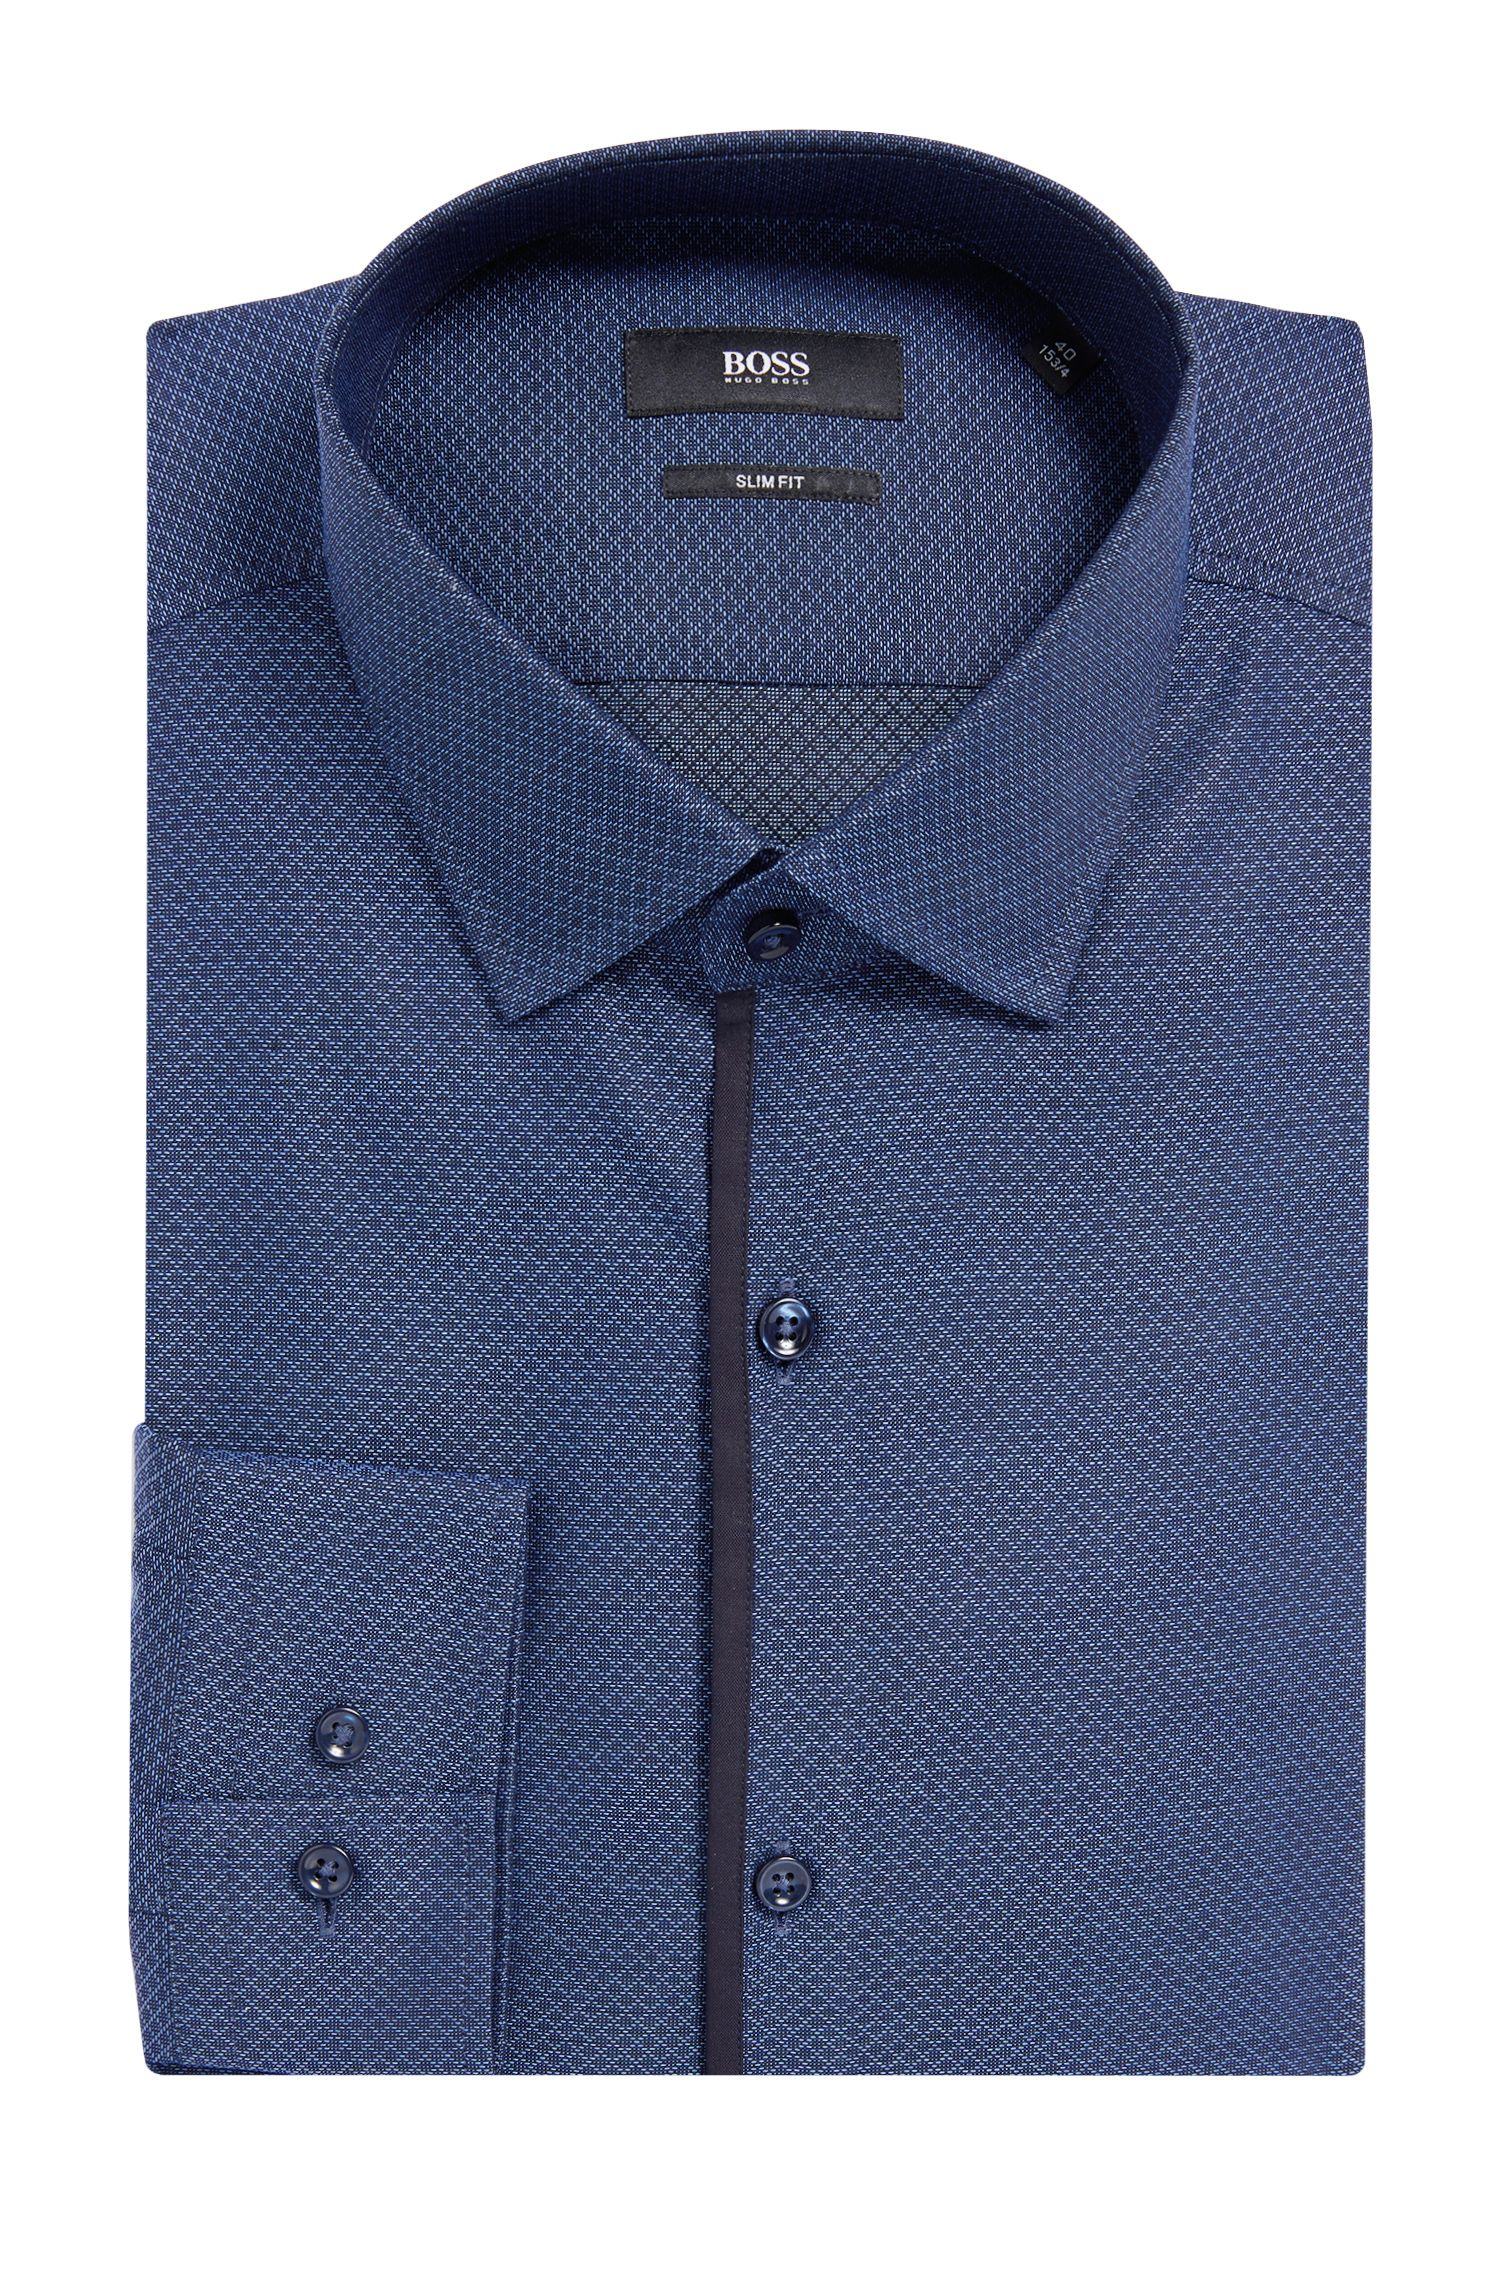 Diamond Pattern Cotton Dress Shirt, Slim Fit | Jeldrik